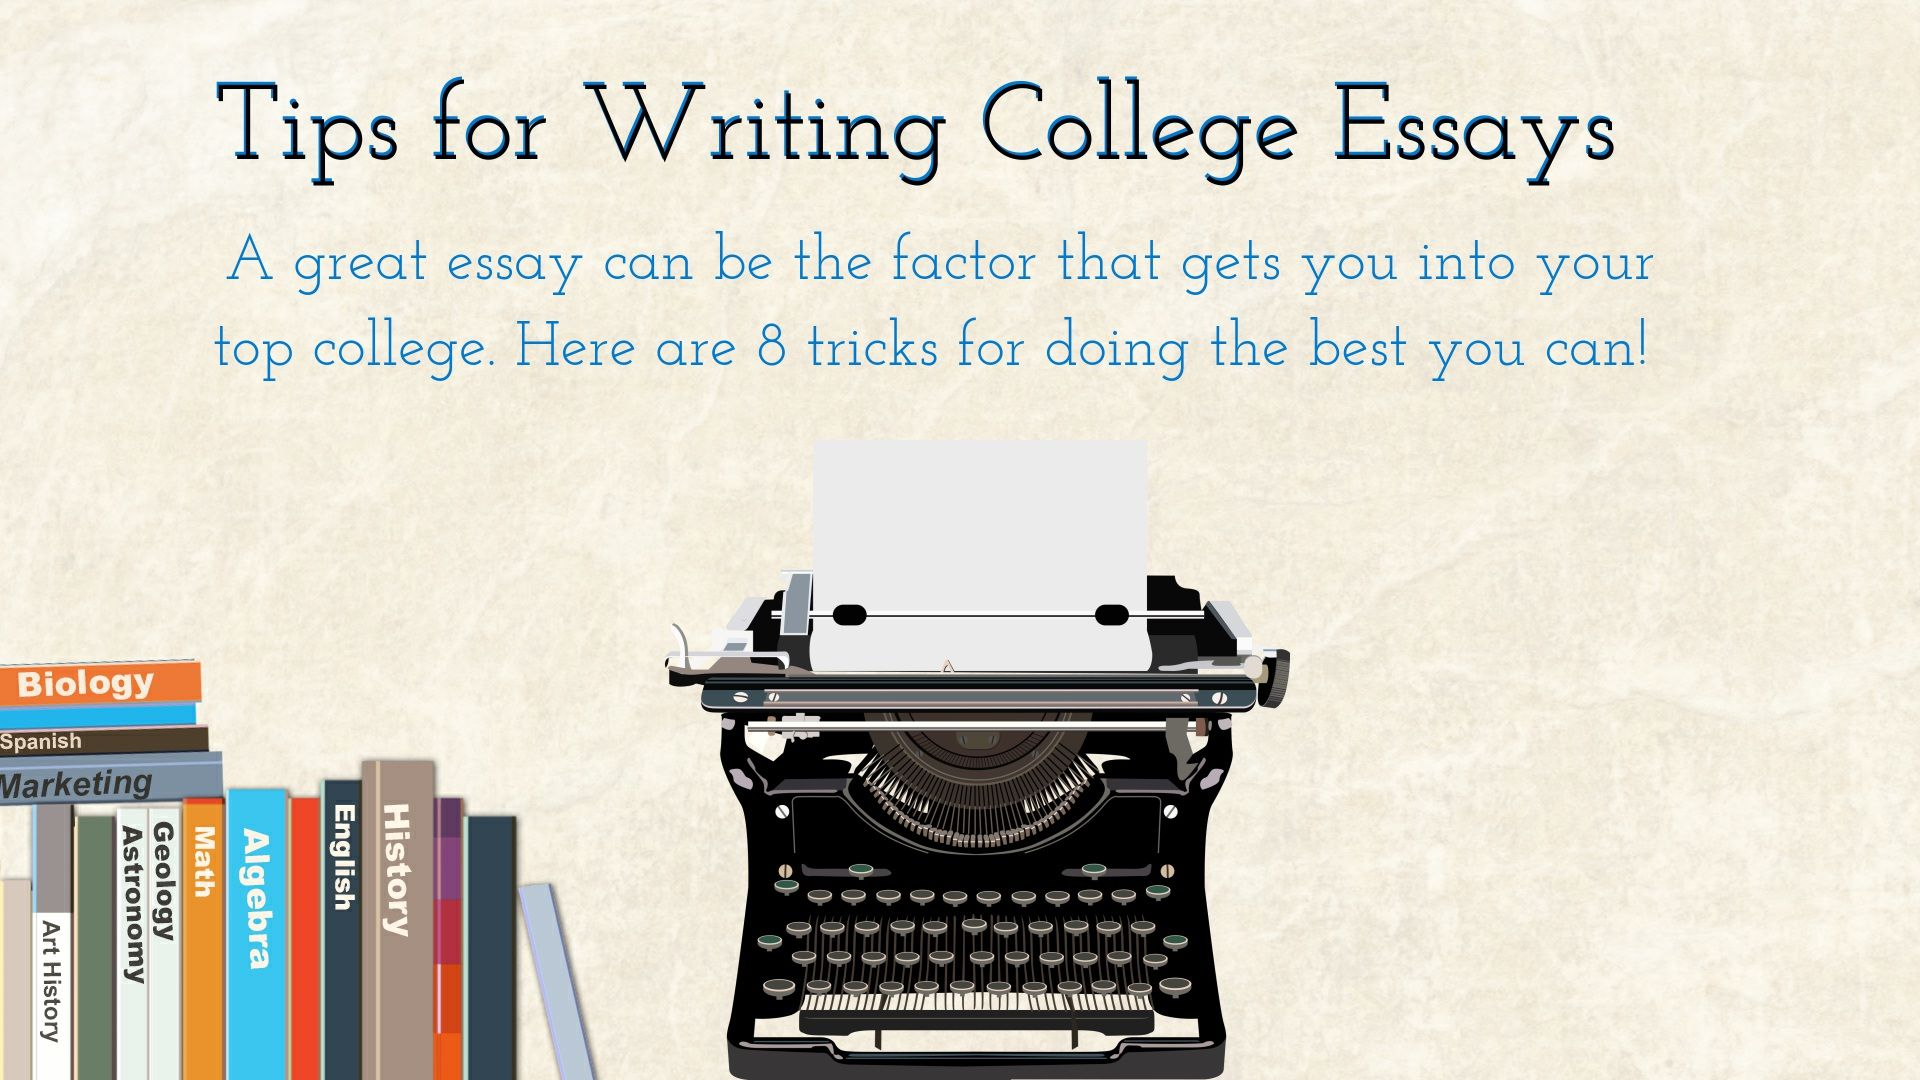 College essay computers esl book review proofreading websites for masters